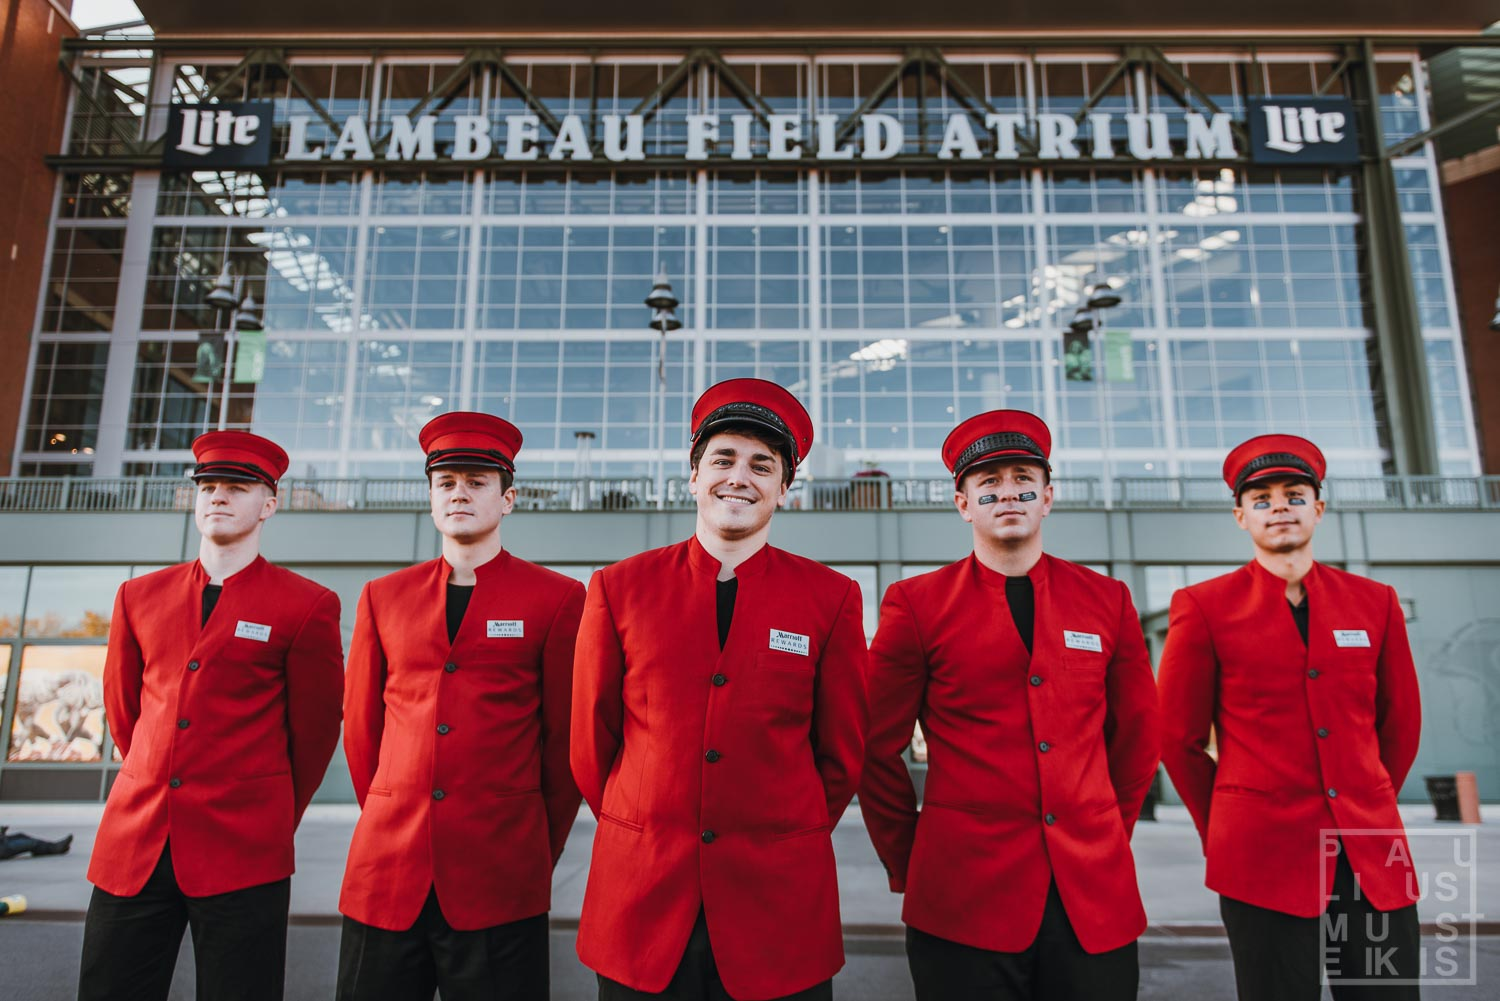 Marriott Rewards concierges during corporate event photography in front of Lambaeu Field in Green bay